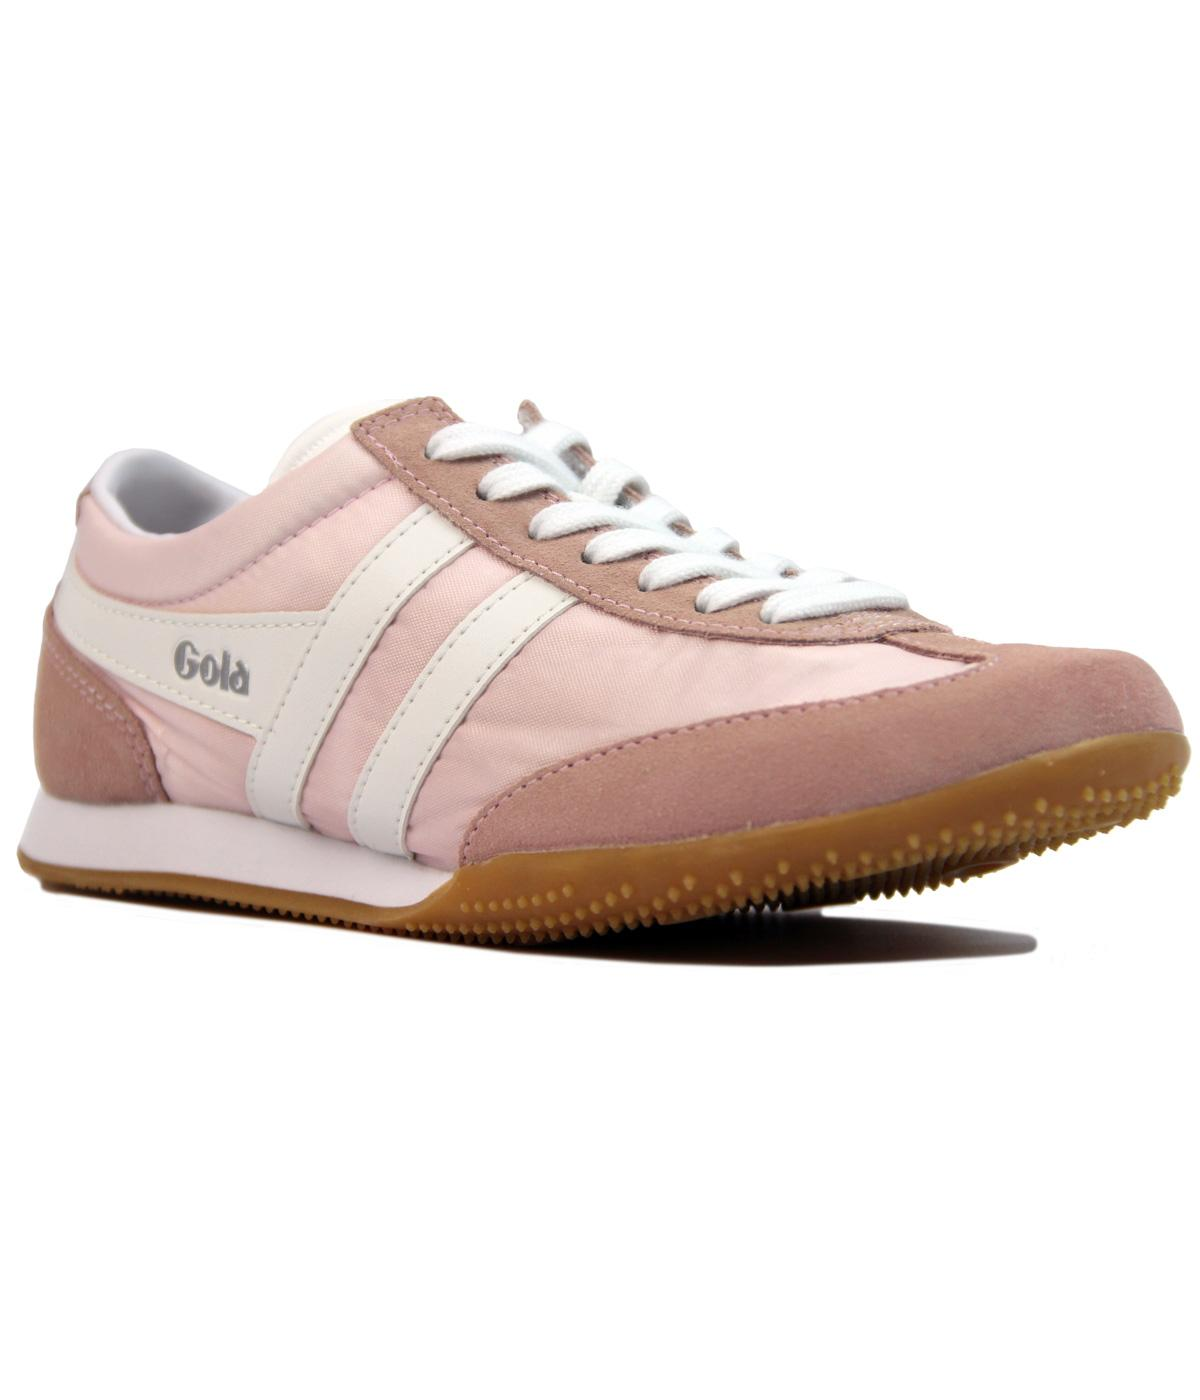 GOLA Wasp Womens Retro Nylon Suede Trainers PINK